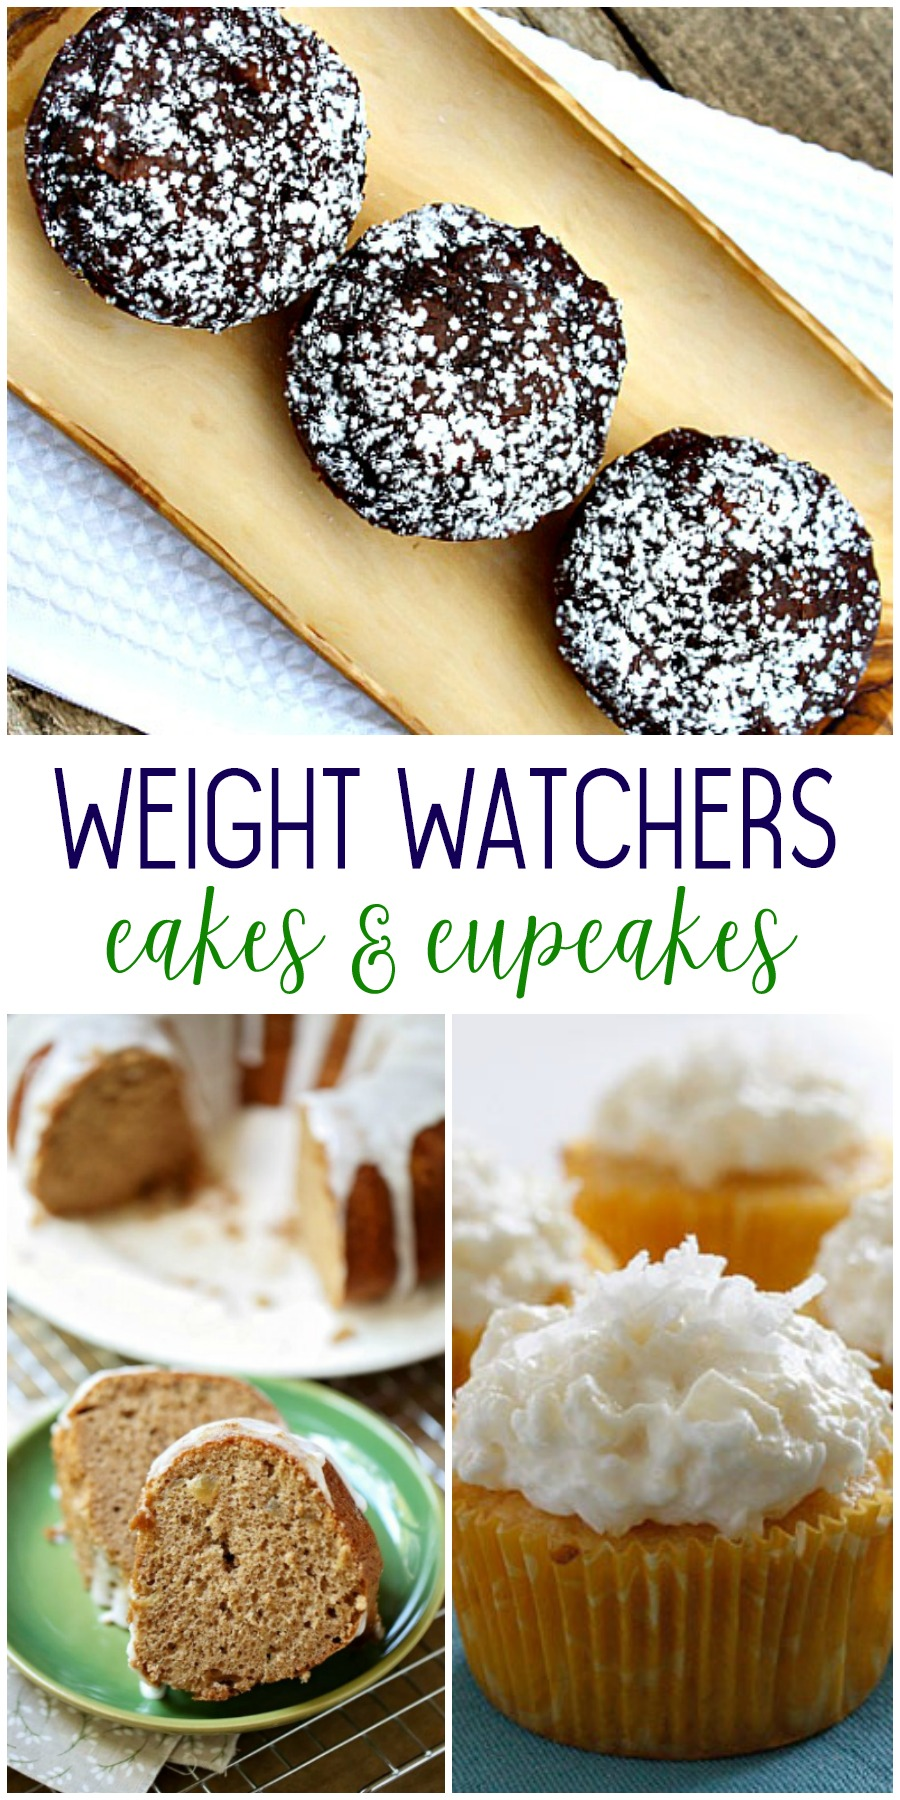 weight watchers friendly cakes and cupcakes